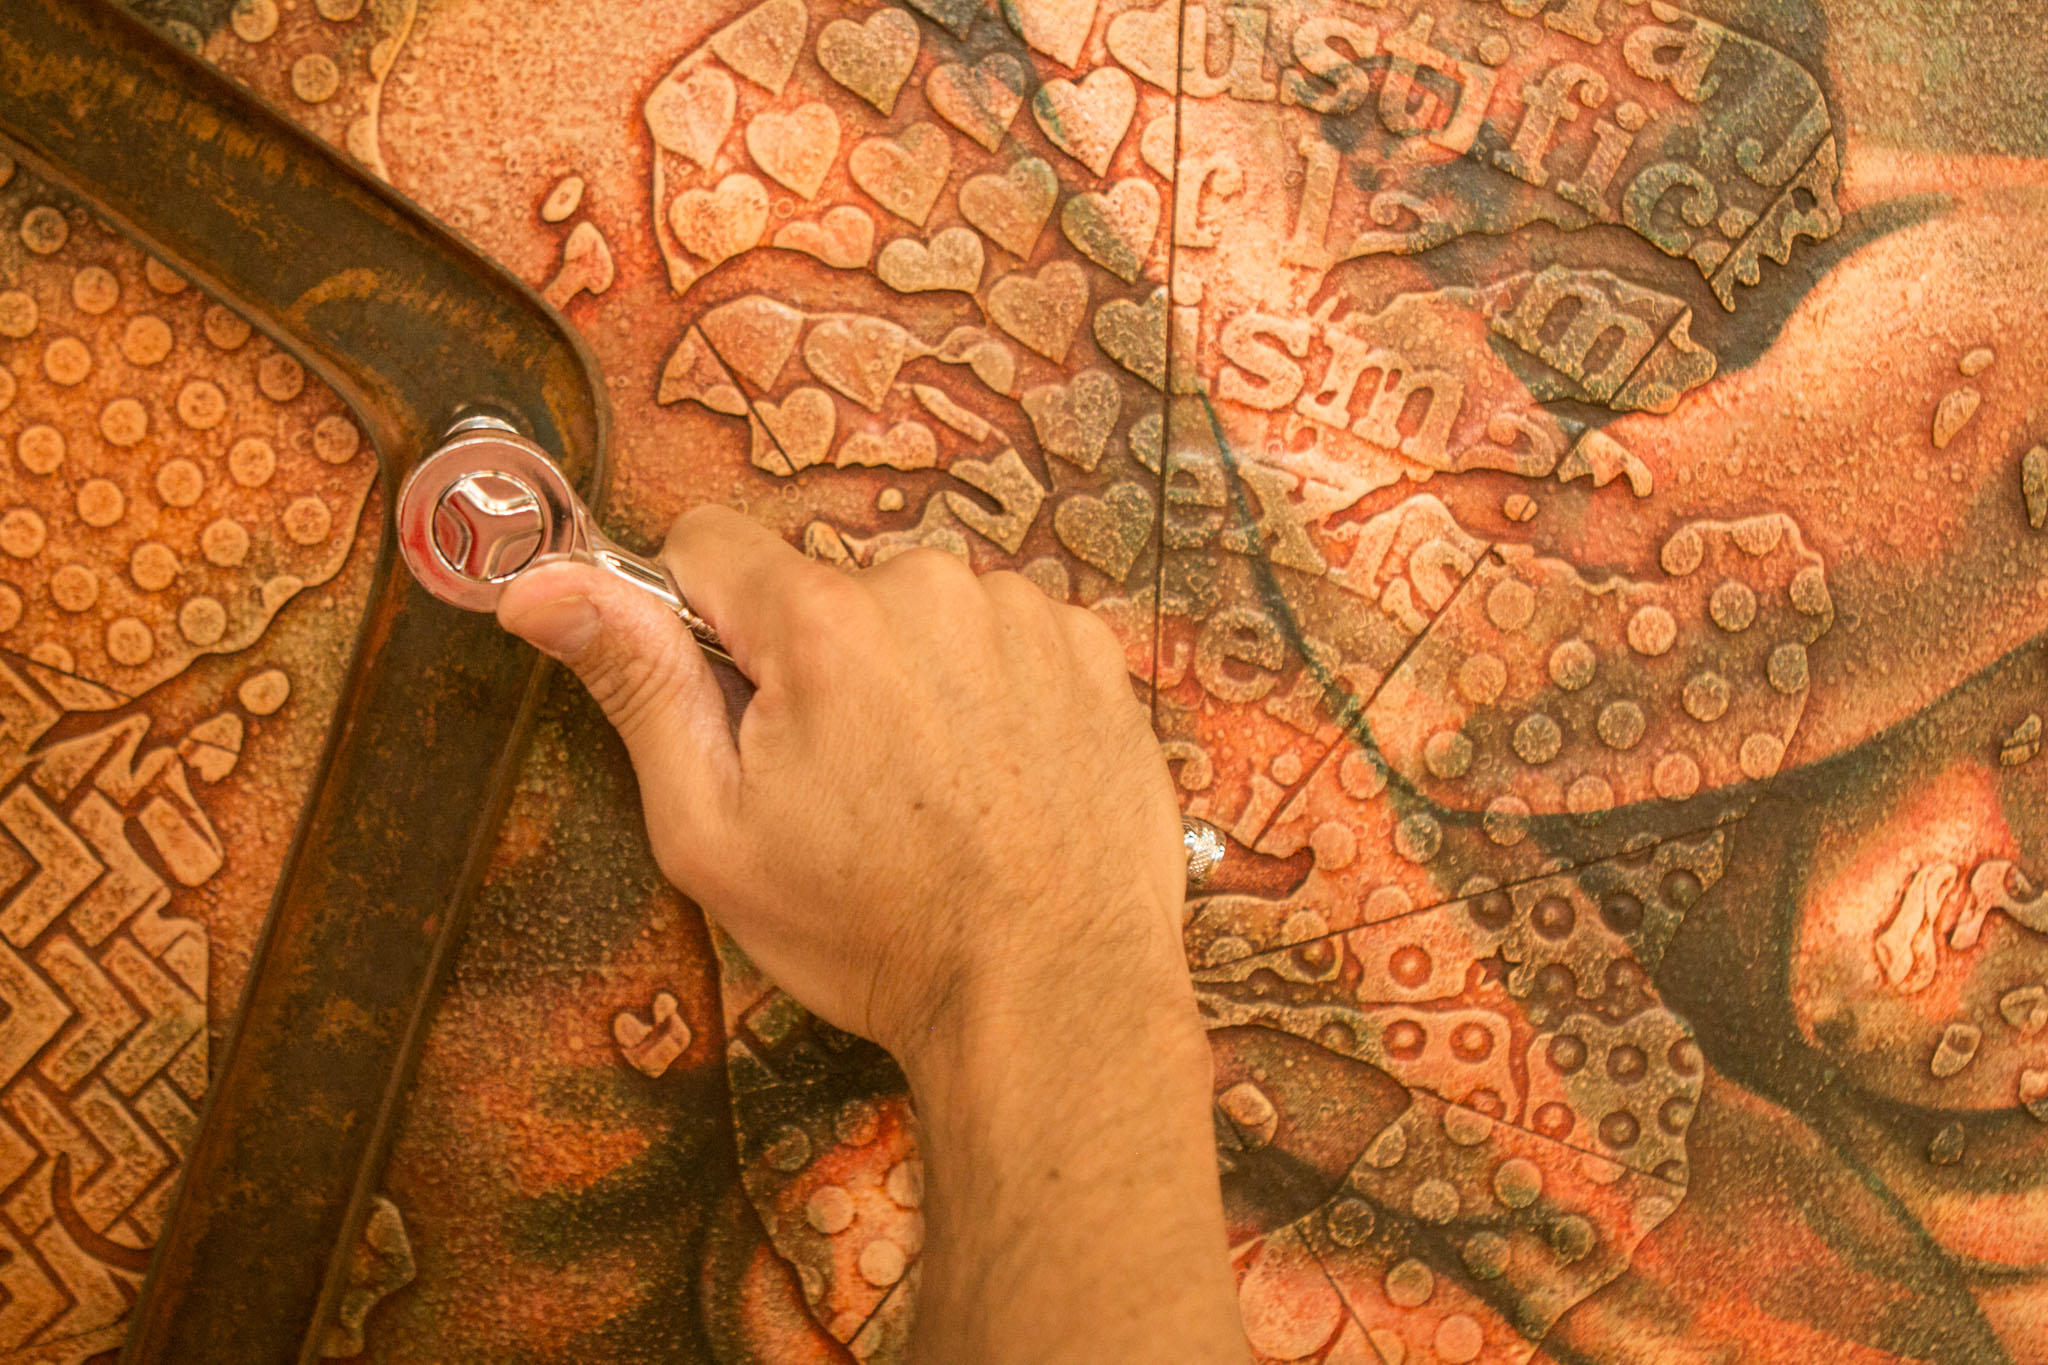 Artist Adrian Rumbaut makes adjustments on a work before the Cuerpo Cubano / Cuban Body show at Bihl Haus Arts.